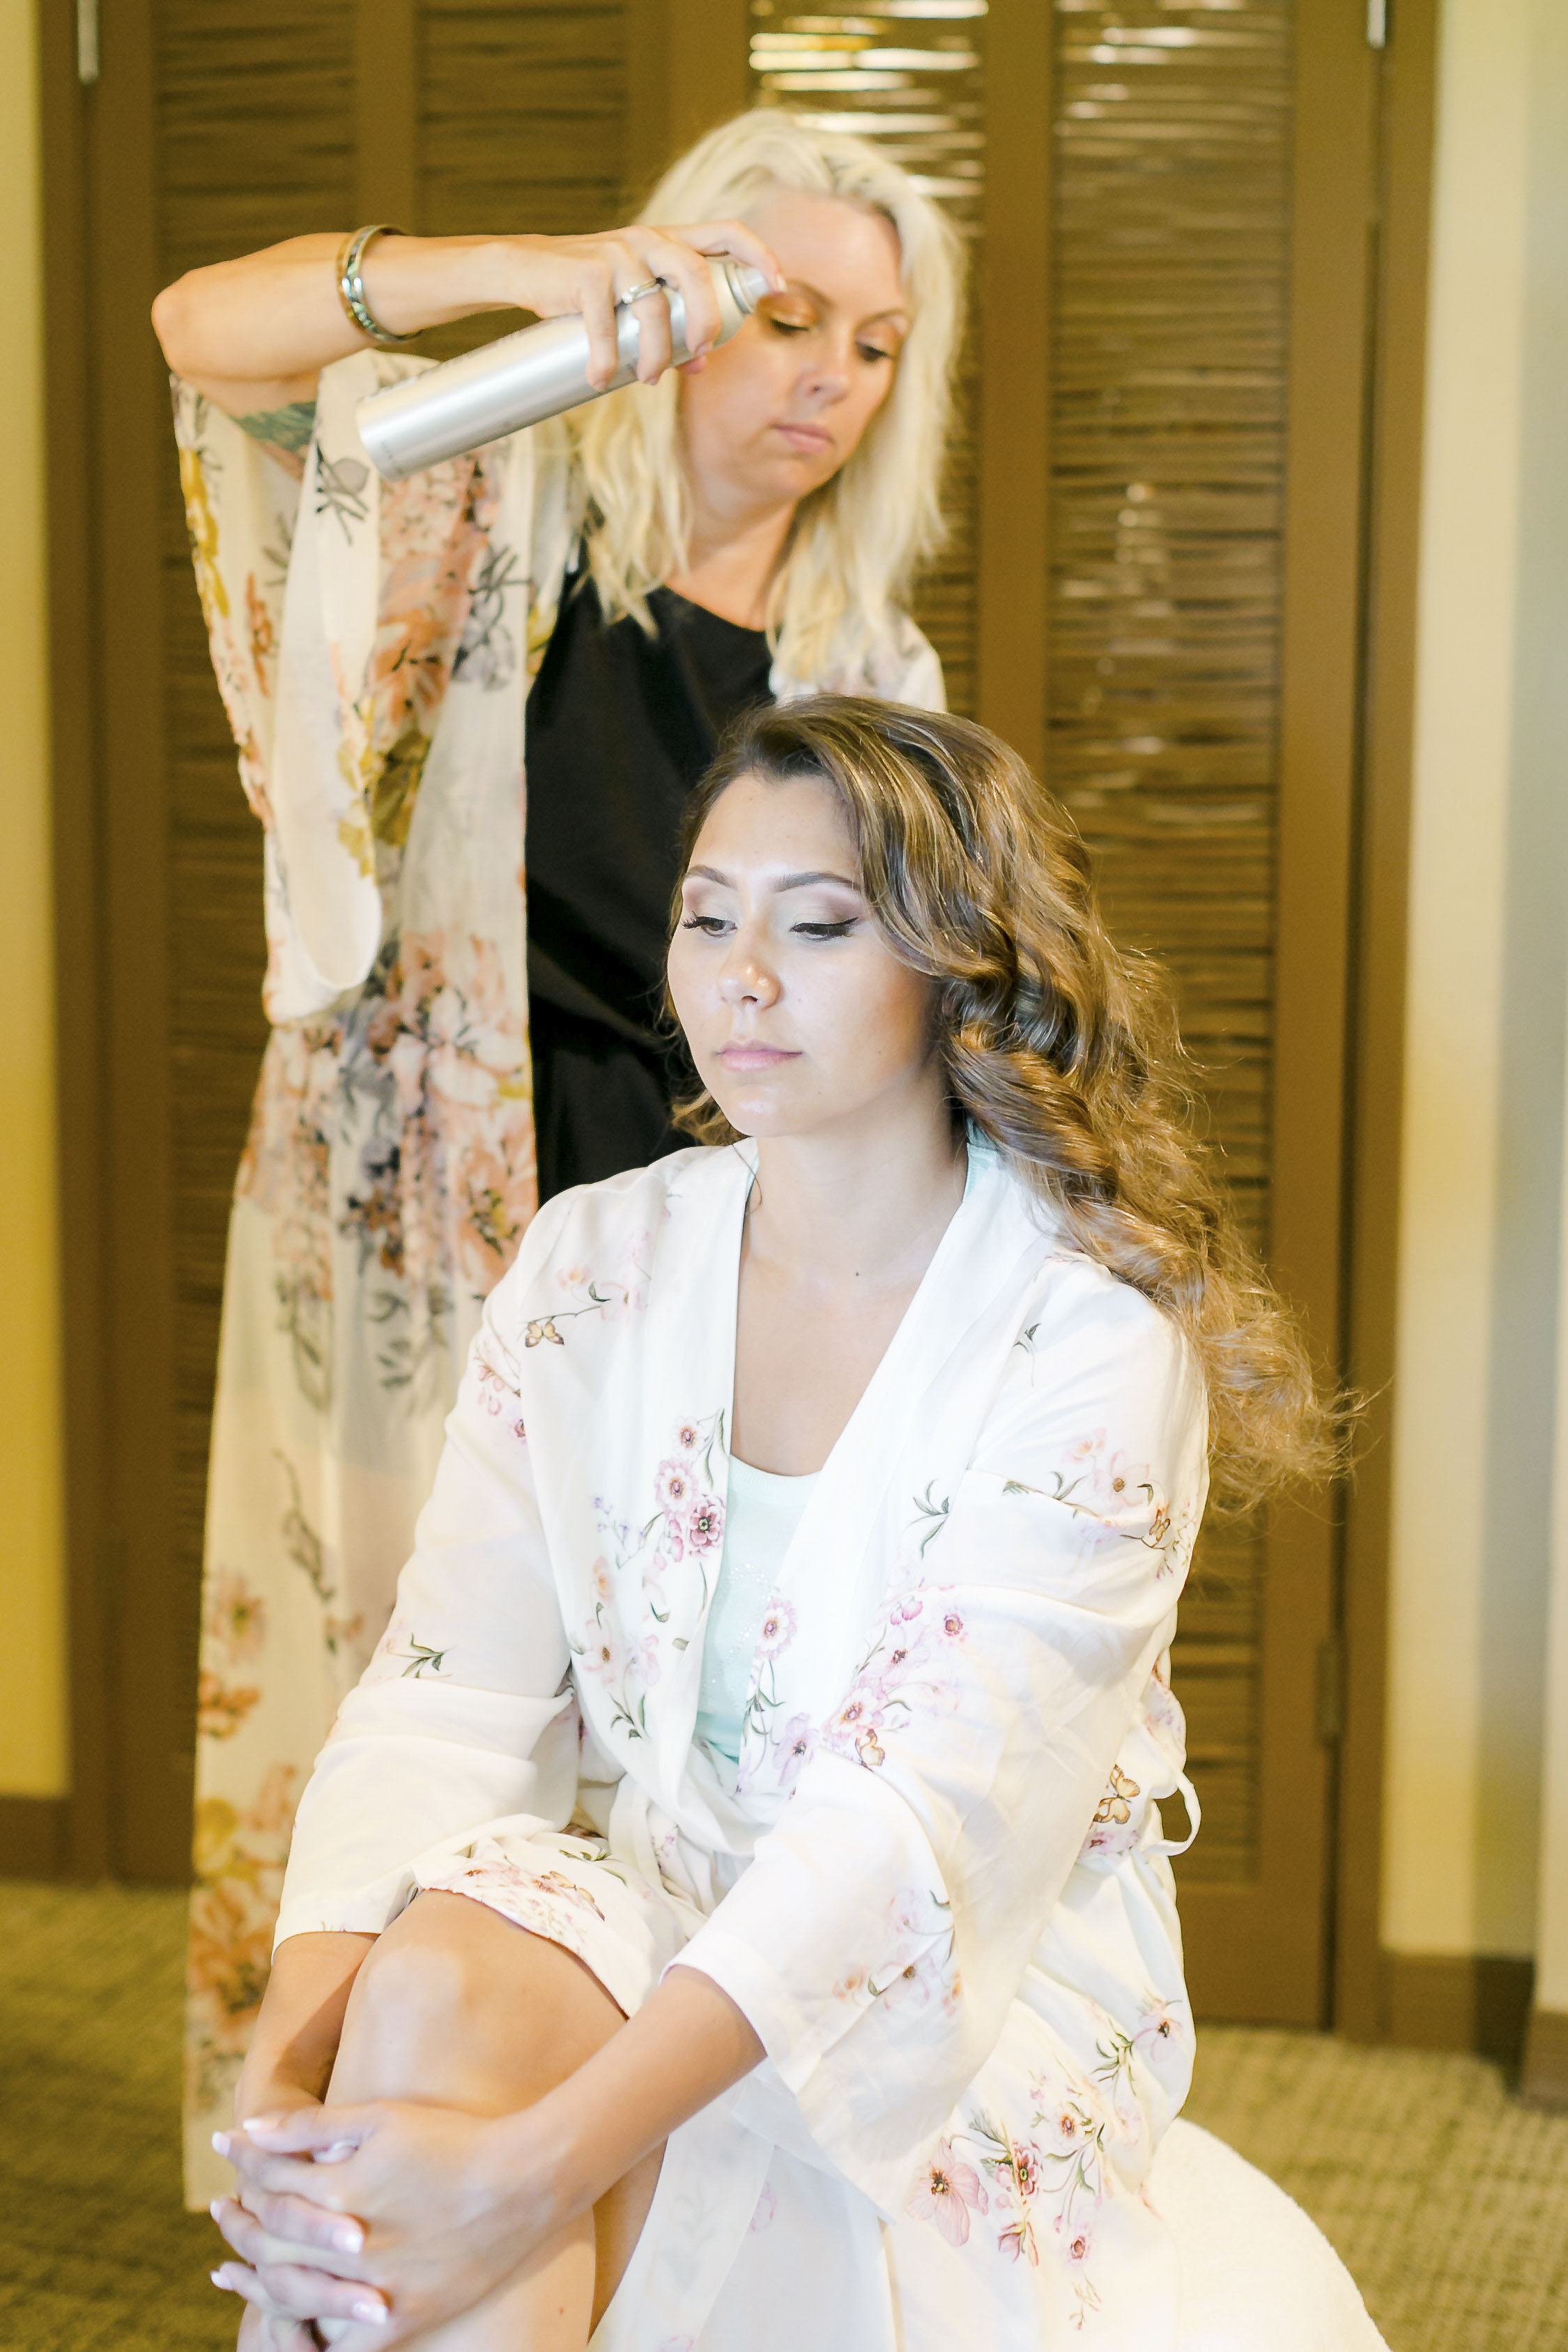 Domenica Beauty _ Hair and Makeup Artist _Wedding _ Temecula, CA _ Samantha and Derek _ 28.JPG